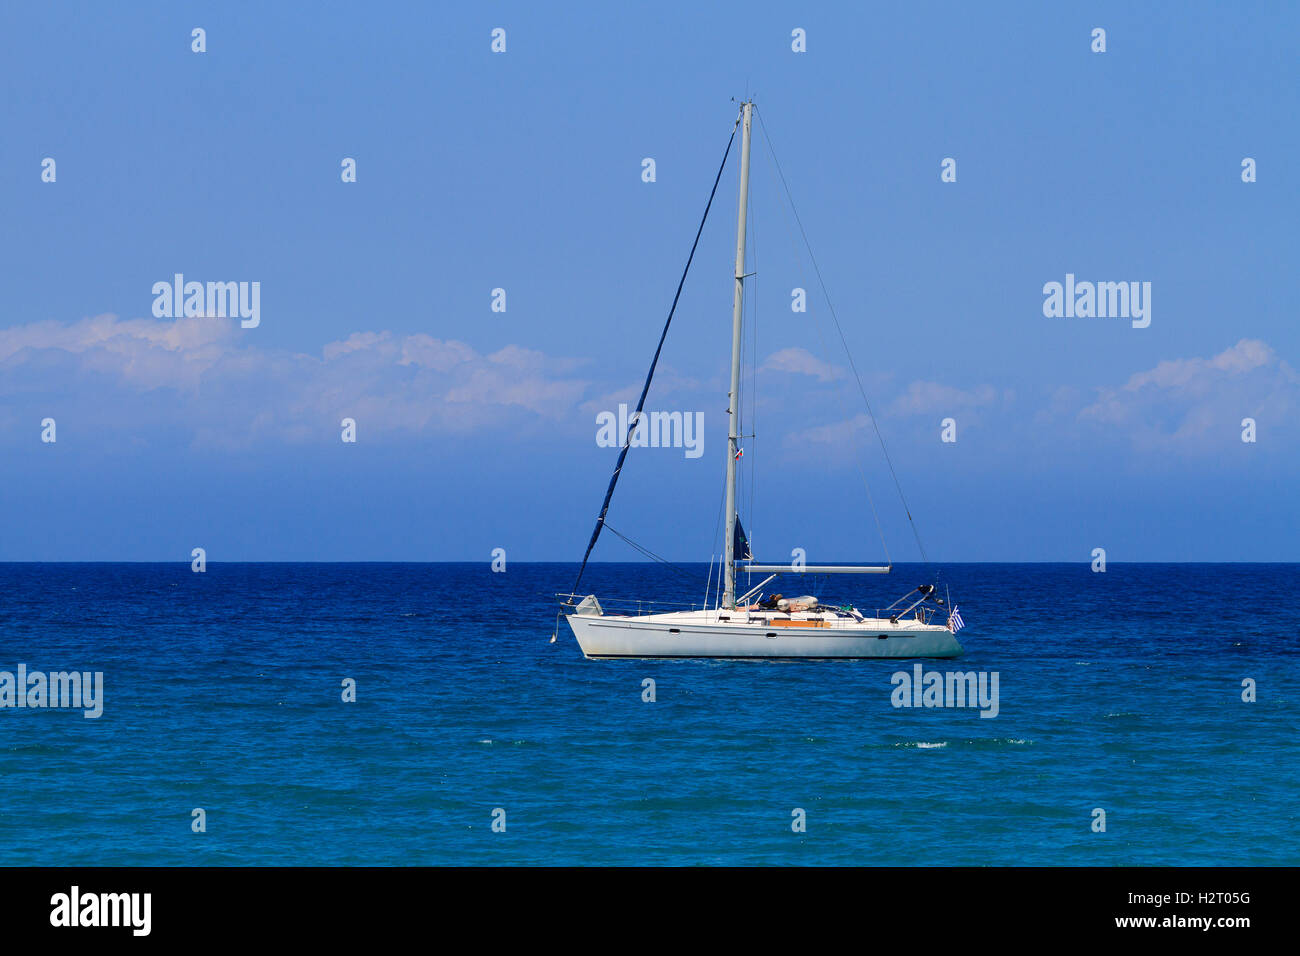 Saling boat in the Ionian sea in Greece - Stock Image